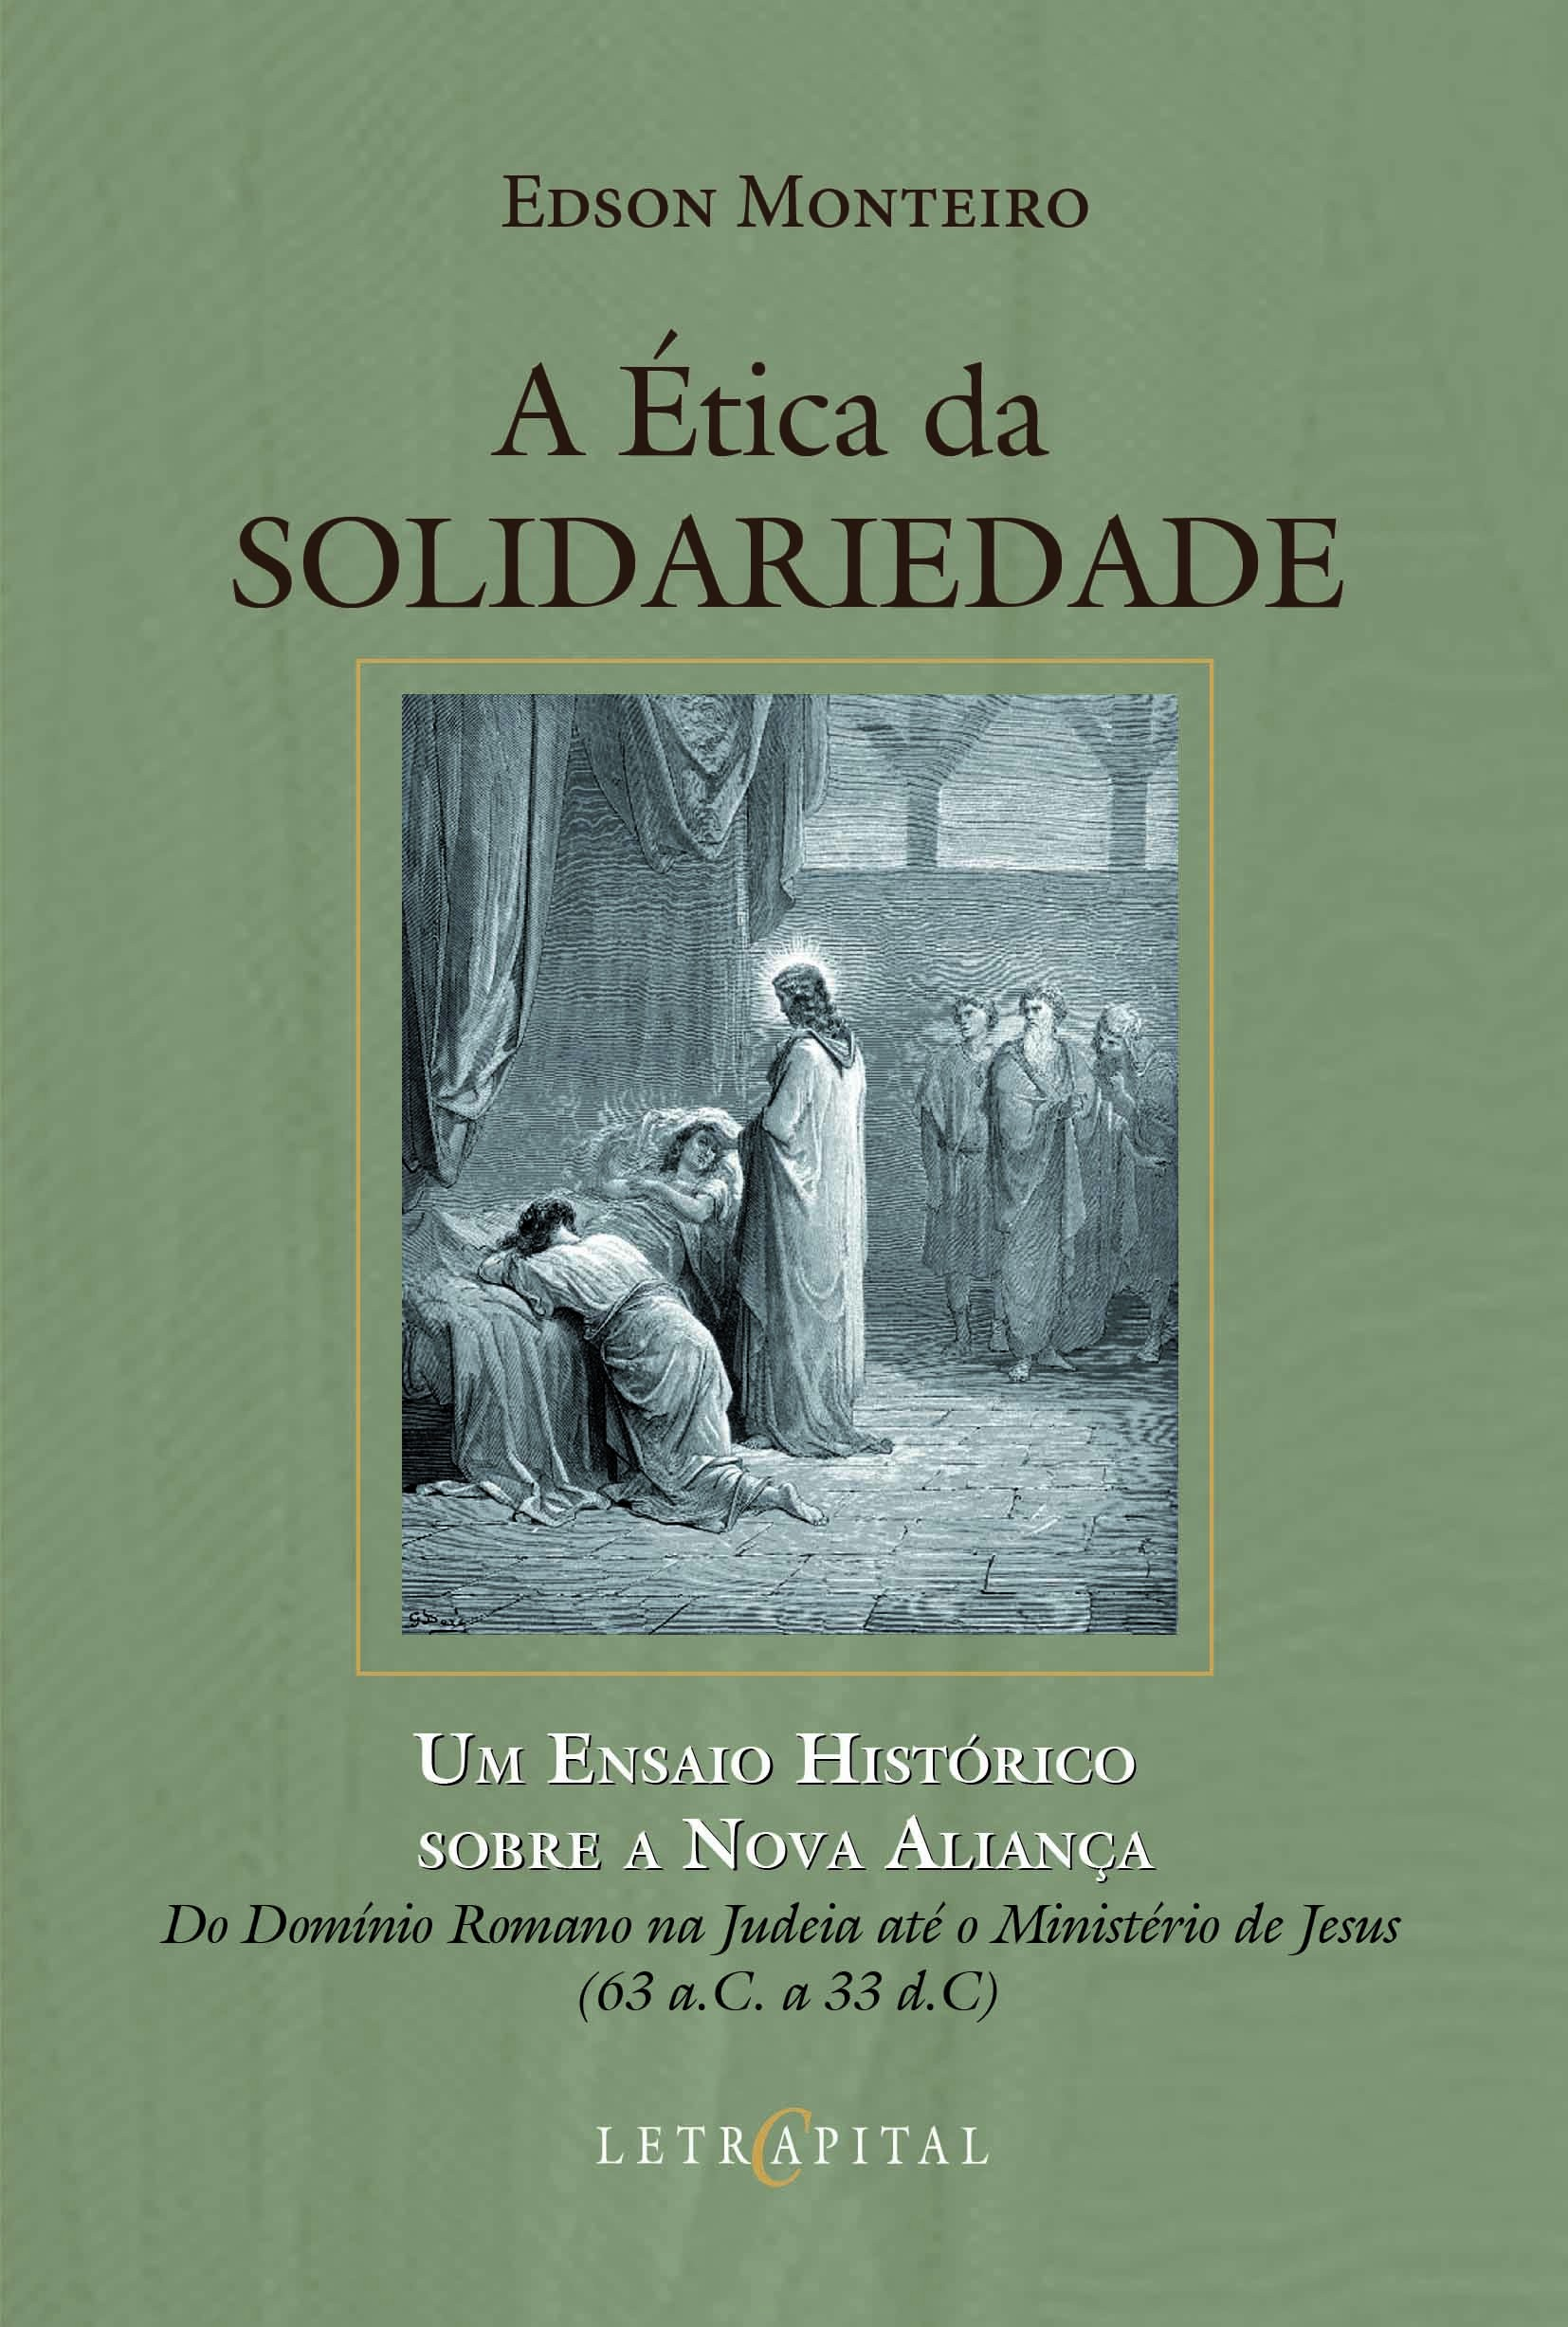 A Ética da Solidariedade - Um ensaio histórico sobre a nova aliança